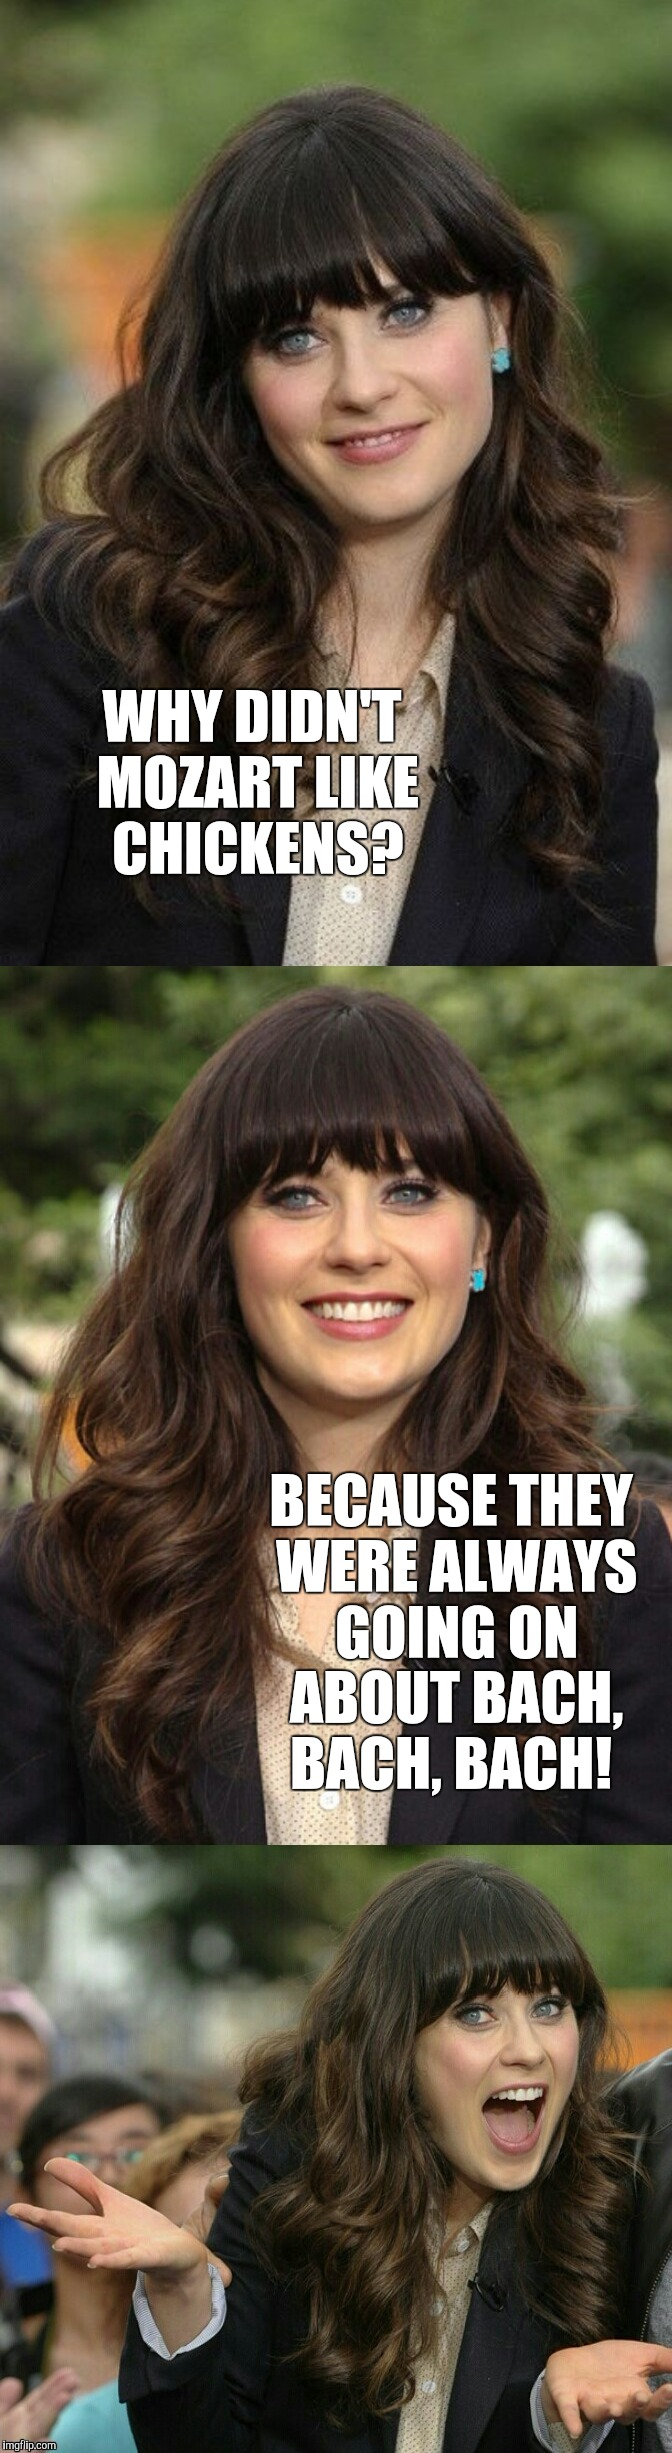 Introducing my new Zooey Deschanel template!  | WHY DIDN'T MOZART LIKE CHICKENS? BECAUSE THEY WERE ALWAYS GOING ON ABOUT BACH, BACH, BACH! | image tagged in zooey deschanel joke template,jbmemegeek,bad puns,zooey deschanel | made w/ Imgflip meme maker